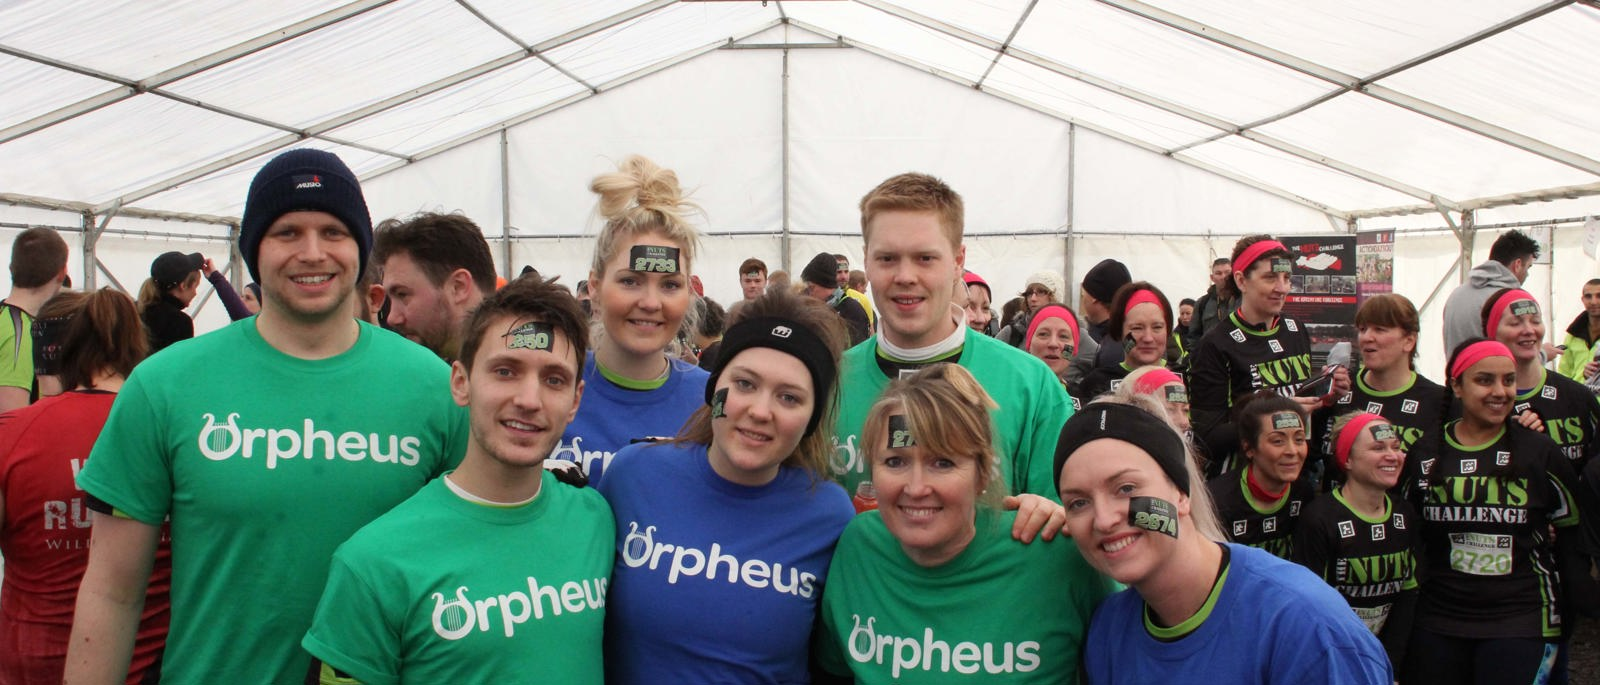 A group of Orpheus supporters taking part in a challenge event mud run